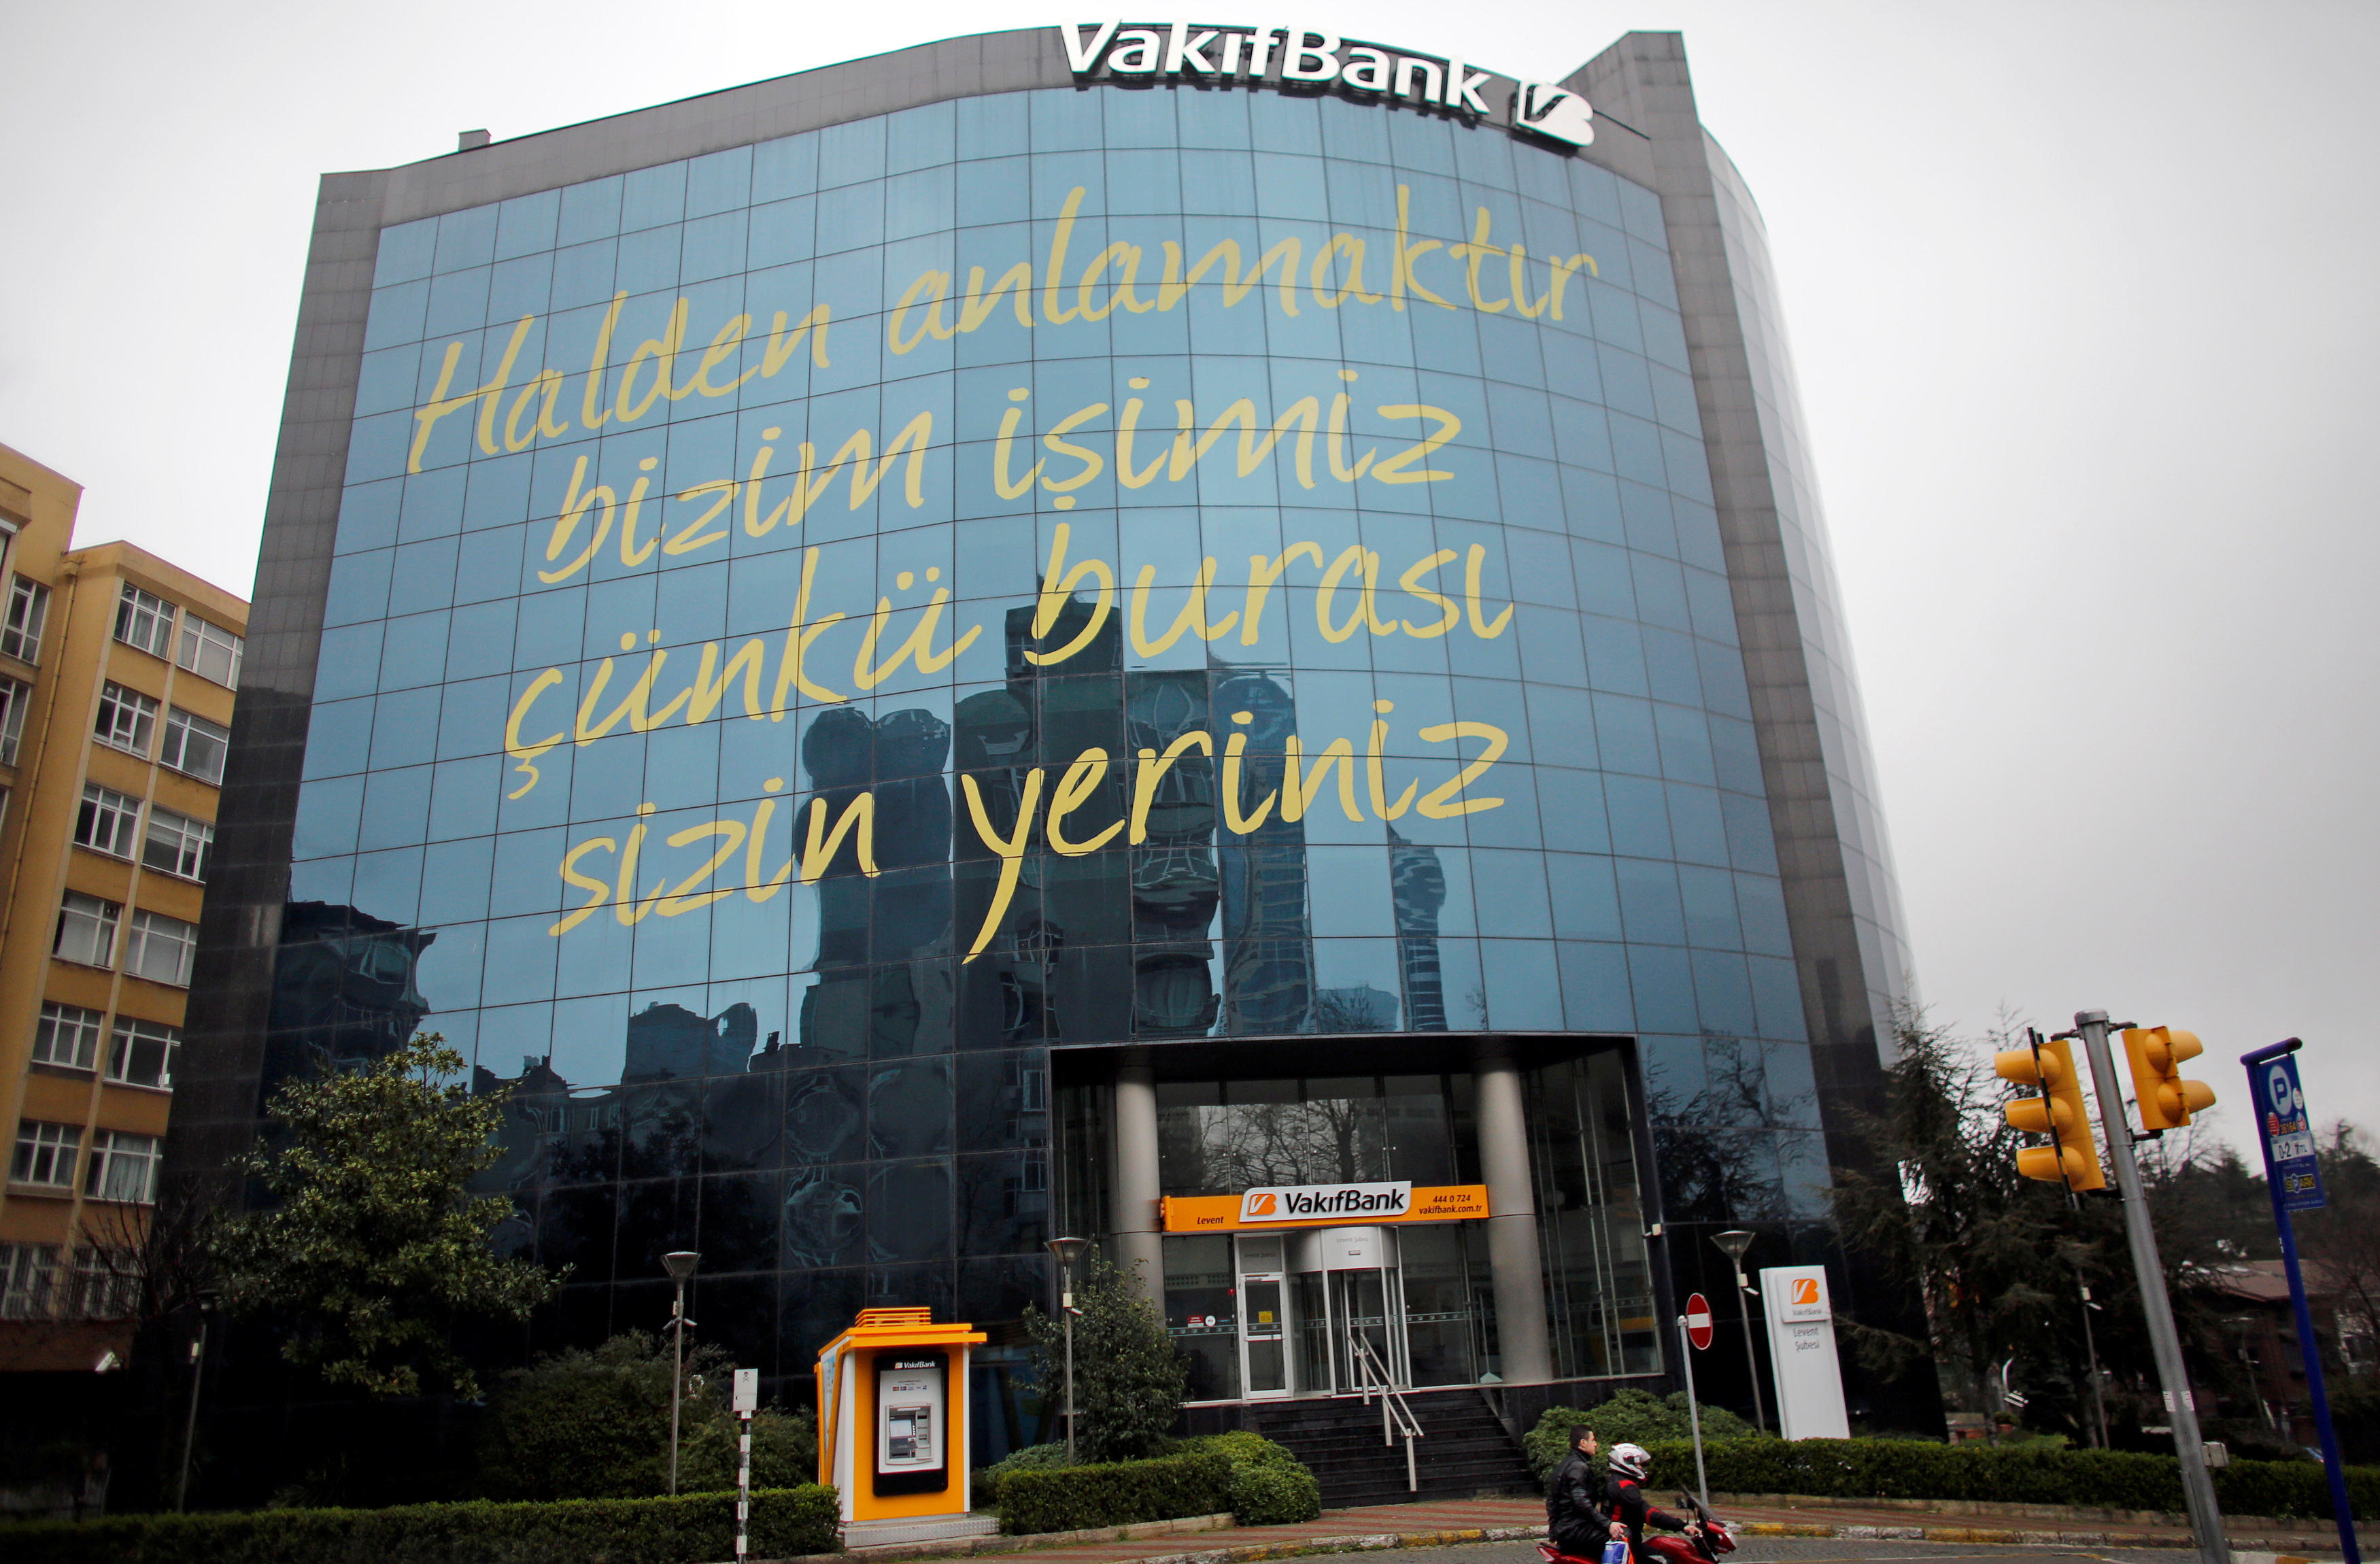 The headquarters of state-run bank Vakifbank is seen in Istanbul March 15, 2015.REUTERS/Murad Sezer/File Photo